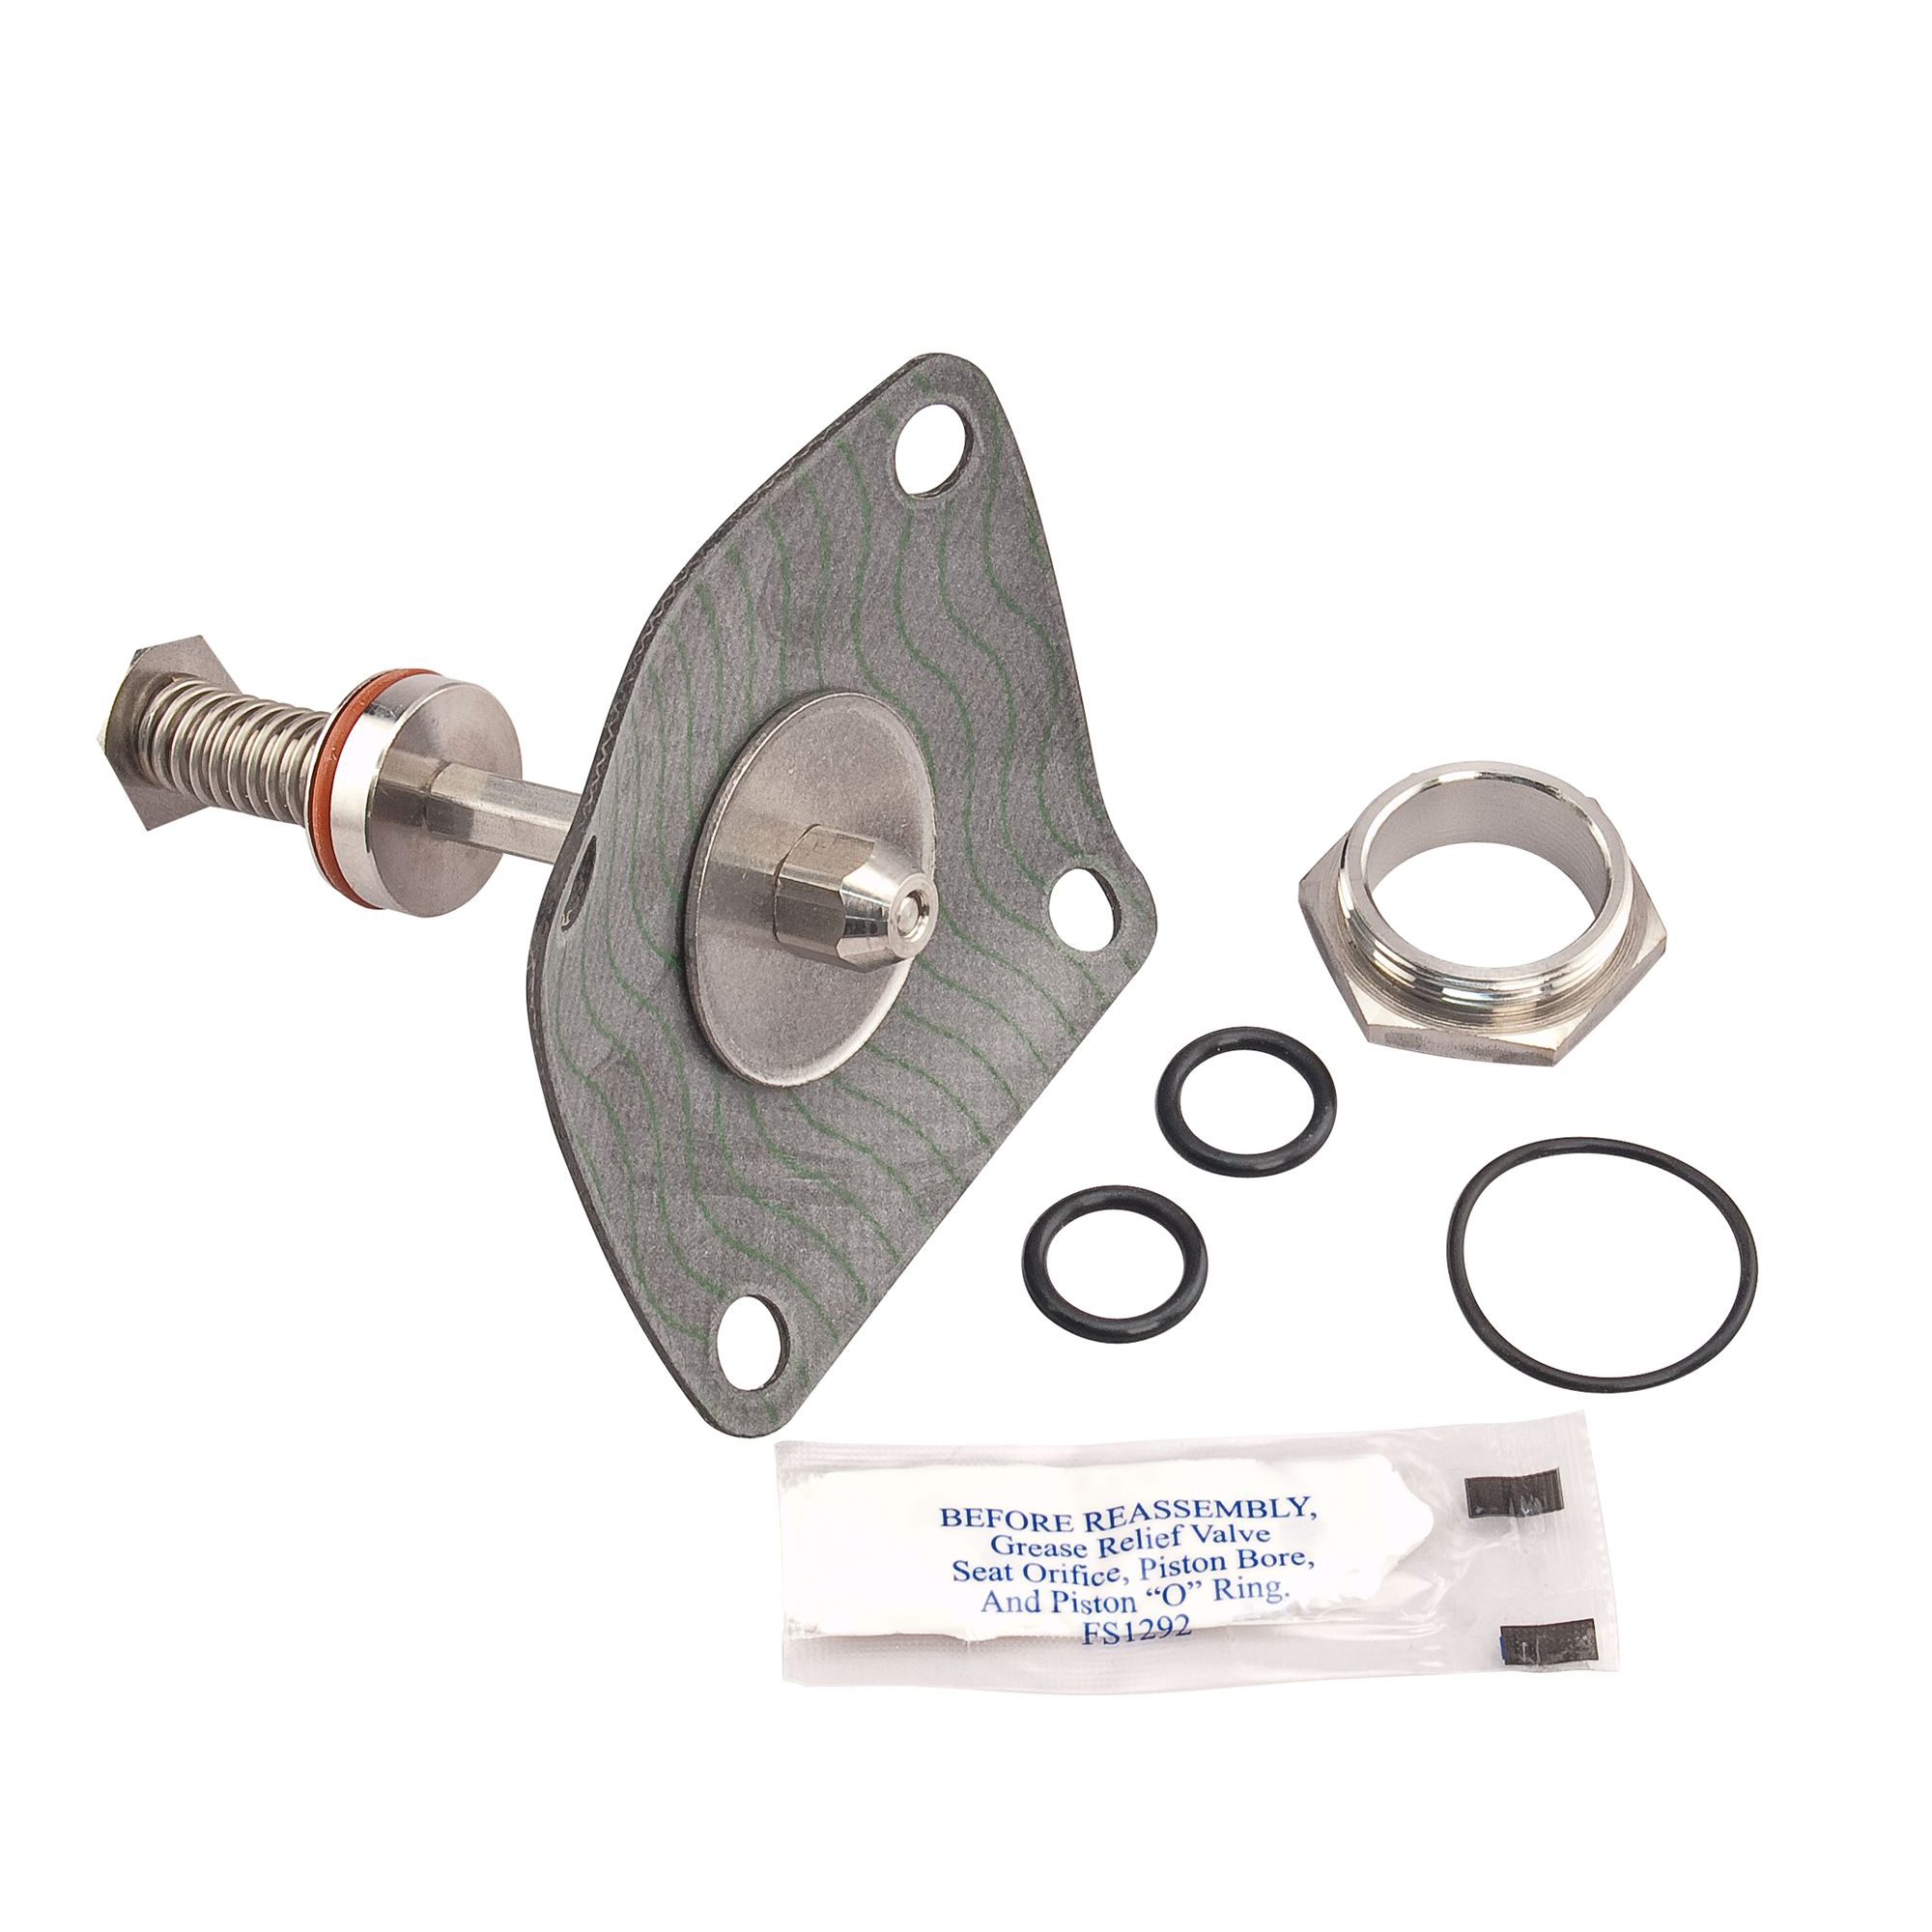 WATTS® 0794059 LFRK 909-VT Relief Valve Kit, For Use With: Model 009/LF009 Reduced Pressure Zone Assemblies, Import